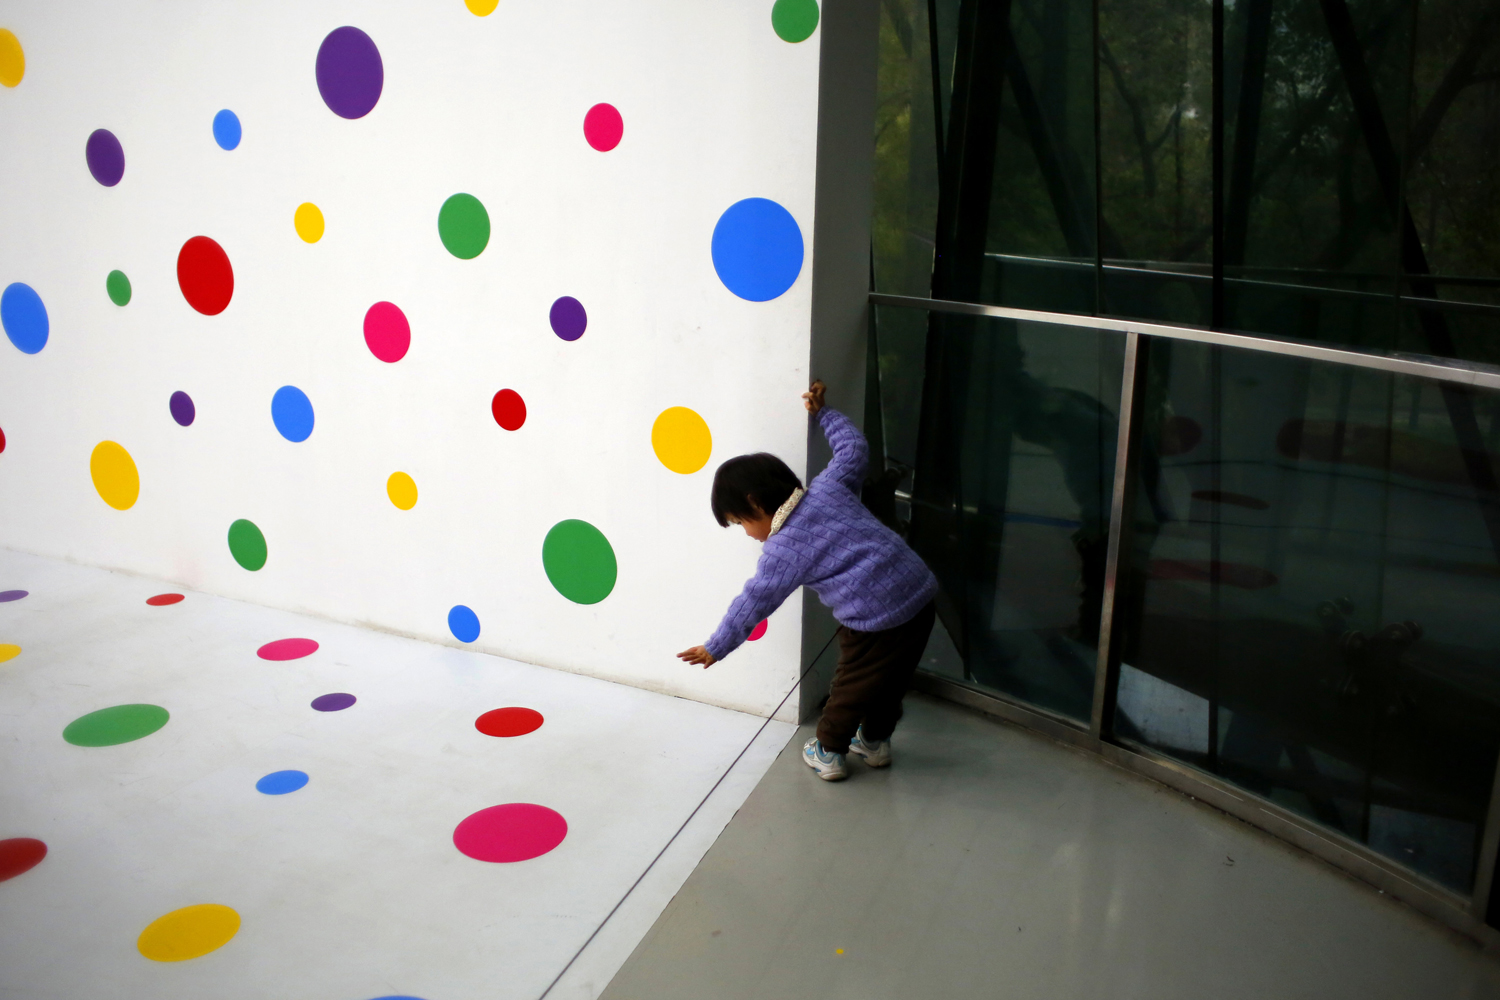 Mar. 25, 2014. A child tries to touch part of the art exhibition 'A Dream I Dreamed' by Japanese artist Yayoi Kusama at the Museum of Contemporary Art of Shanghai.